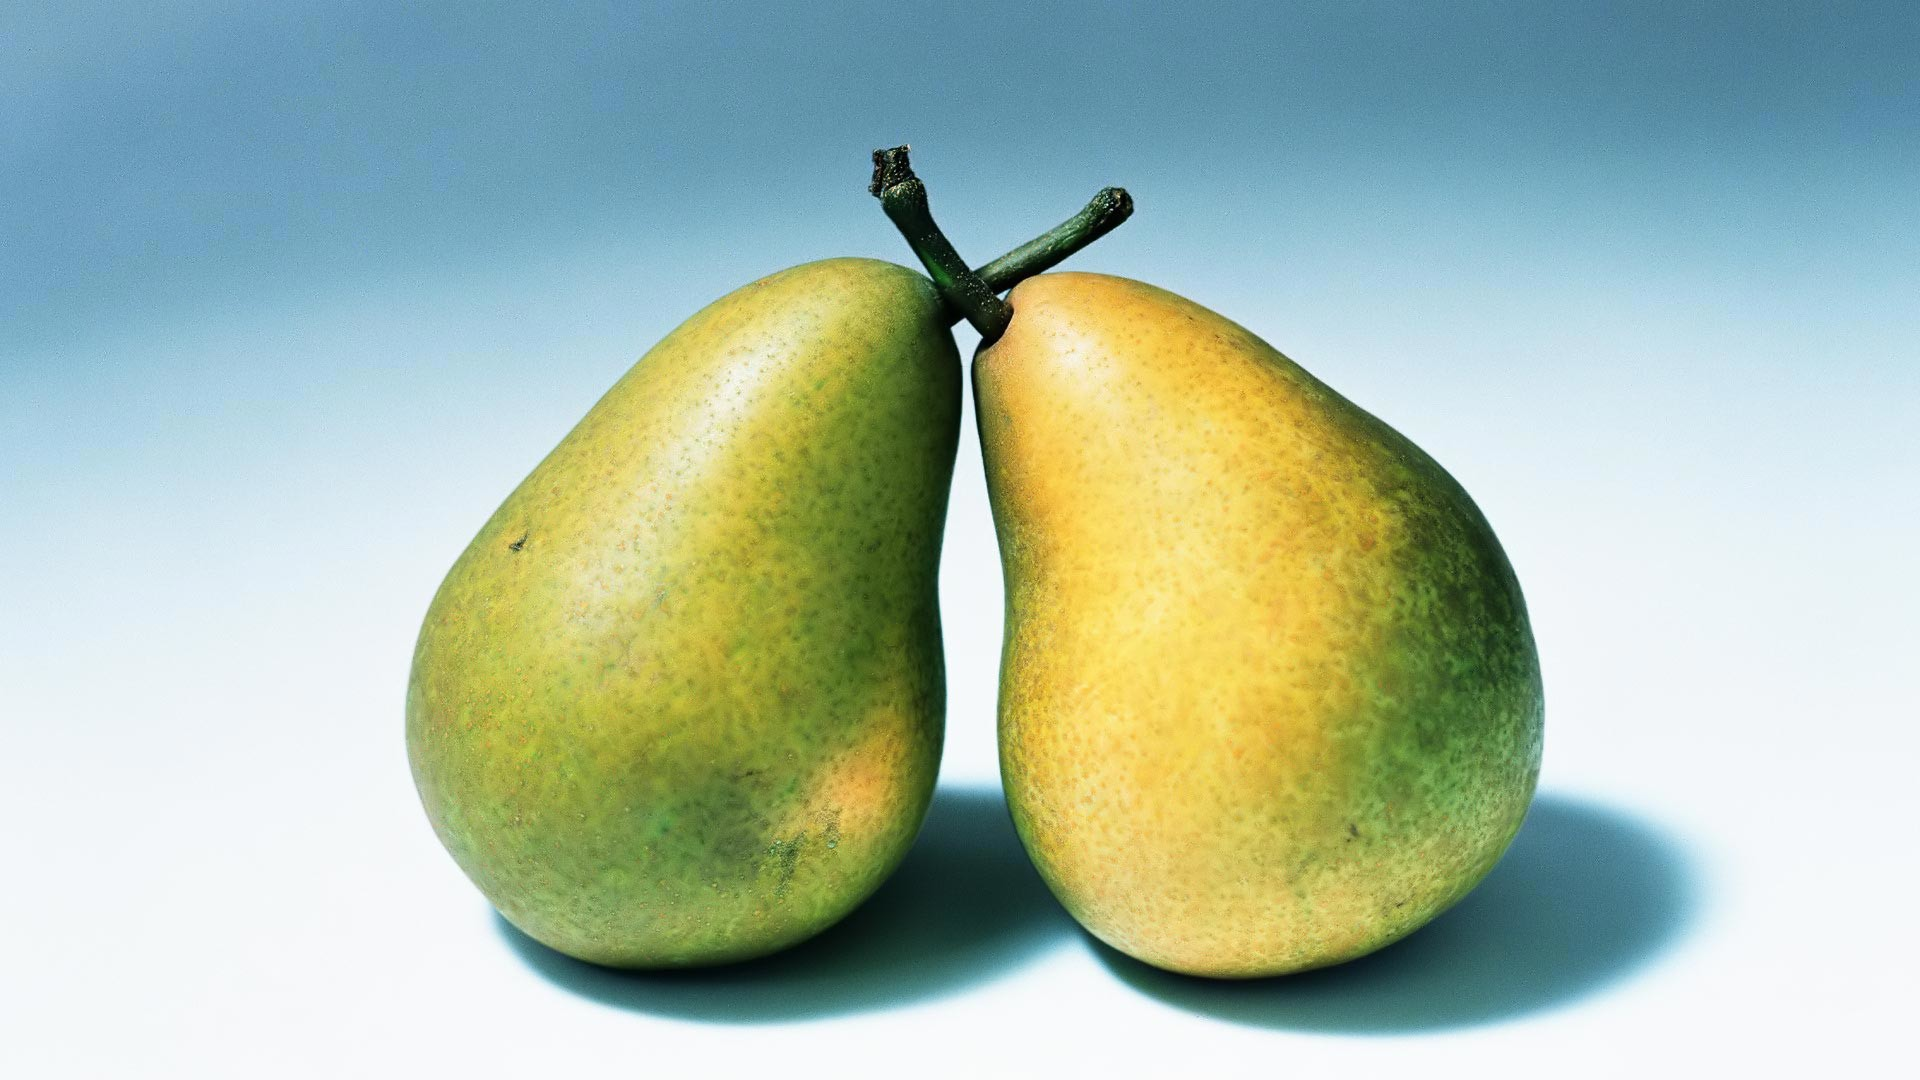 Res: 1920x1080, Pear full hd wallpapers Pear widescreen for desktop